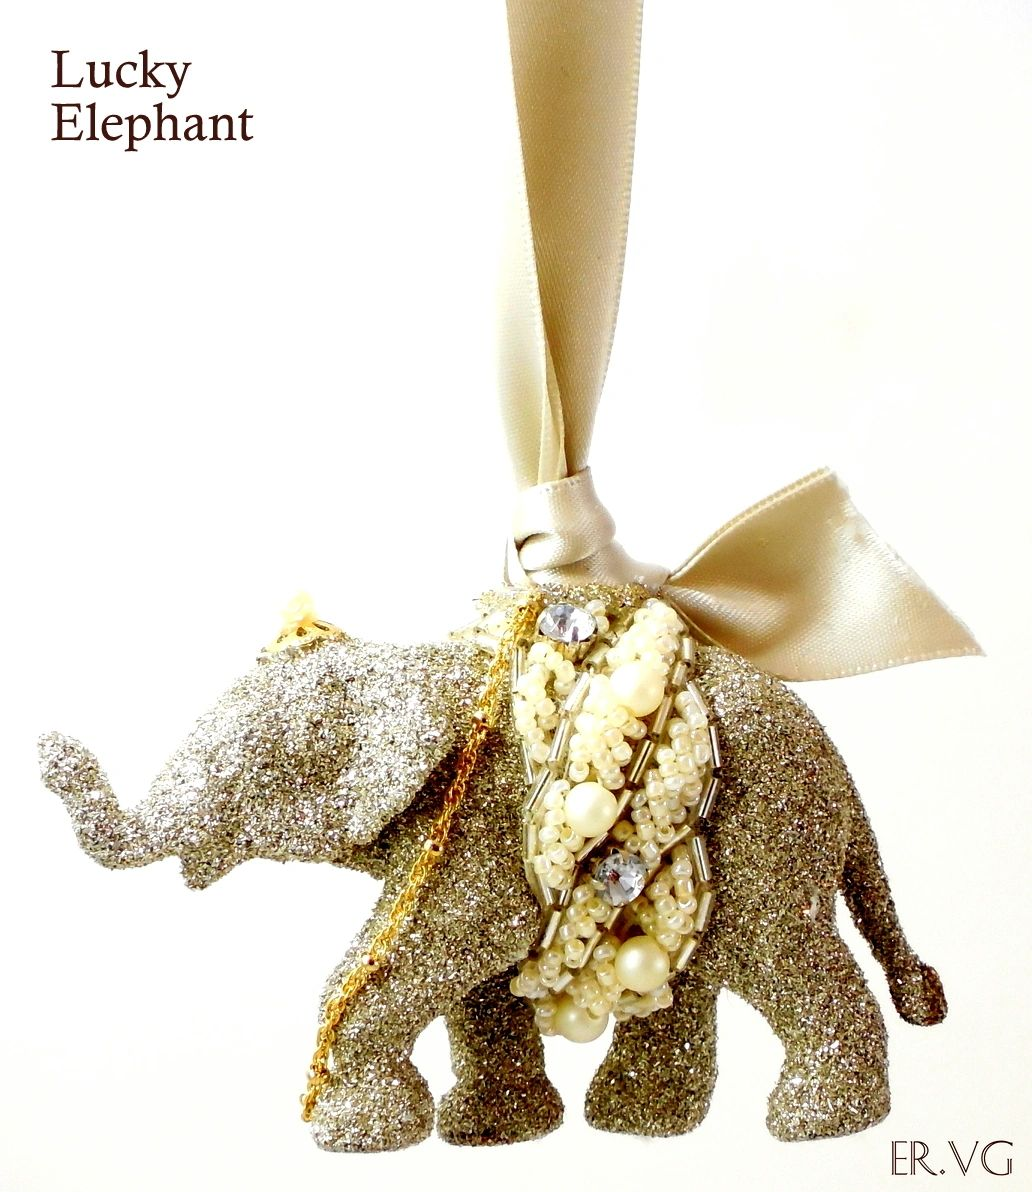 Eliot Raffit Christmas Ornament Lucky Elephant in Vintage Silver Glass Glitter Handmade in the USA